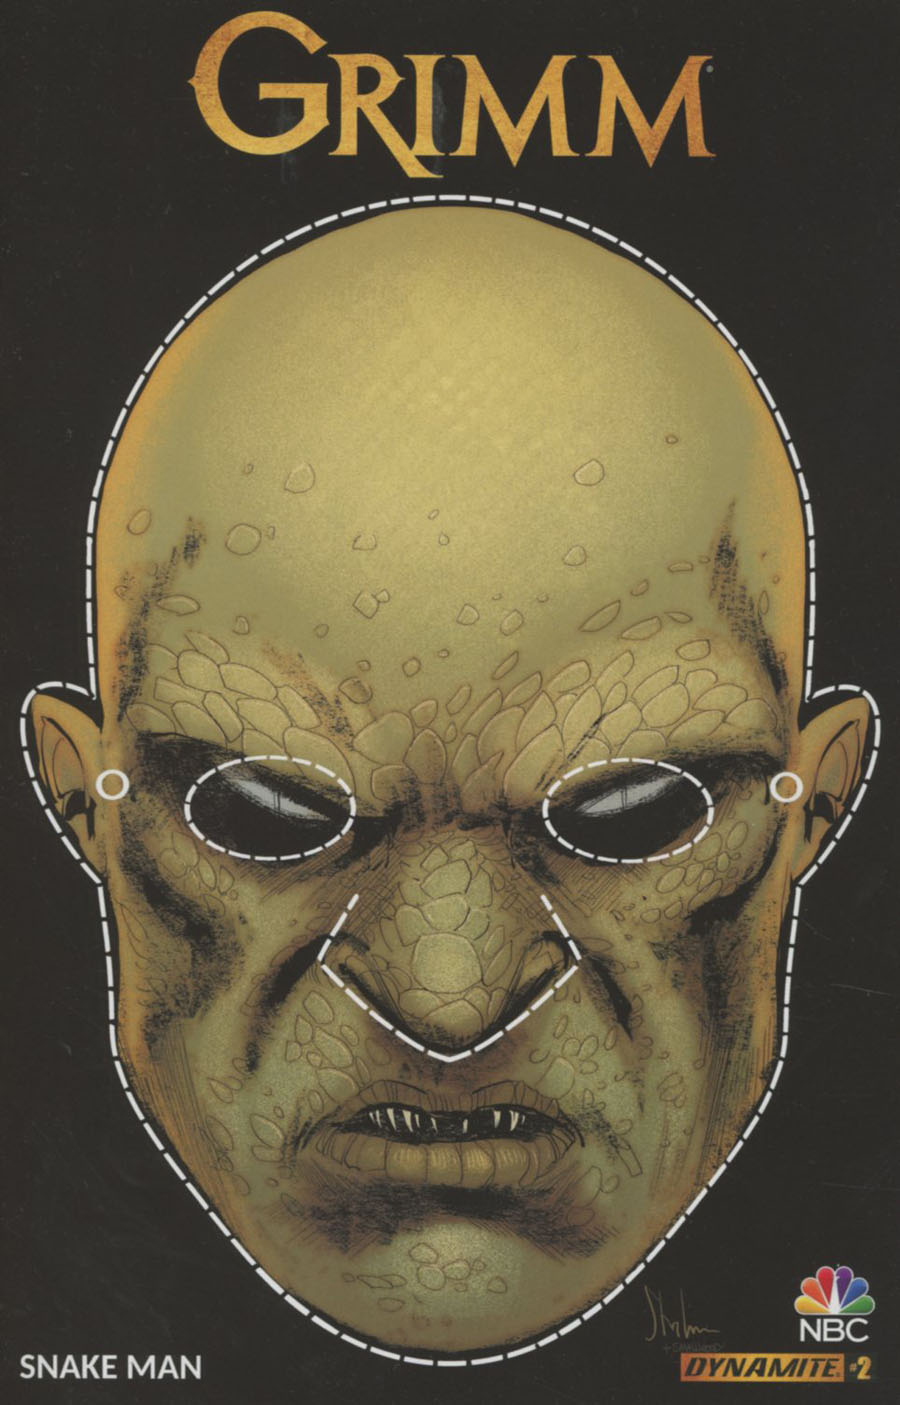 Grimm Vol 2 #2 Cover B Variant Kyle Strahm Mask Cover